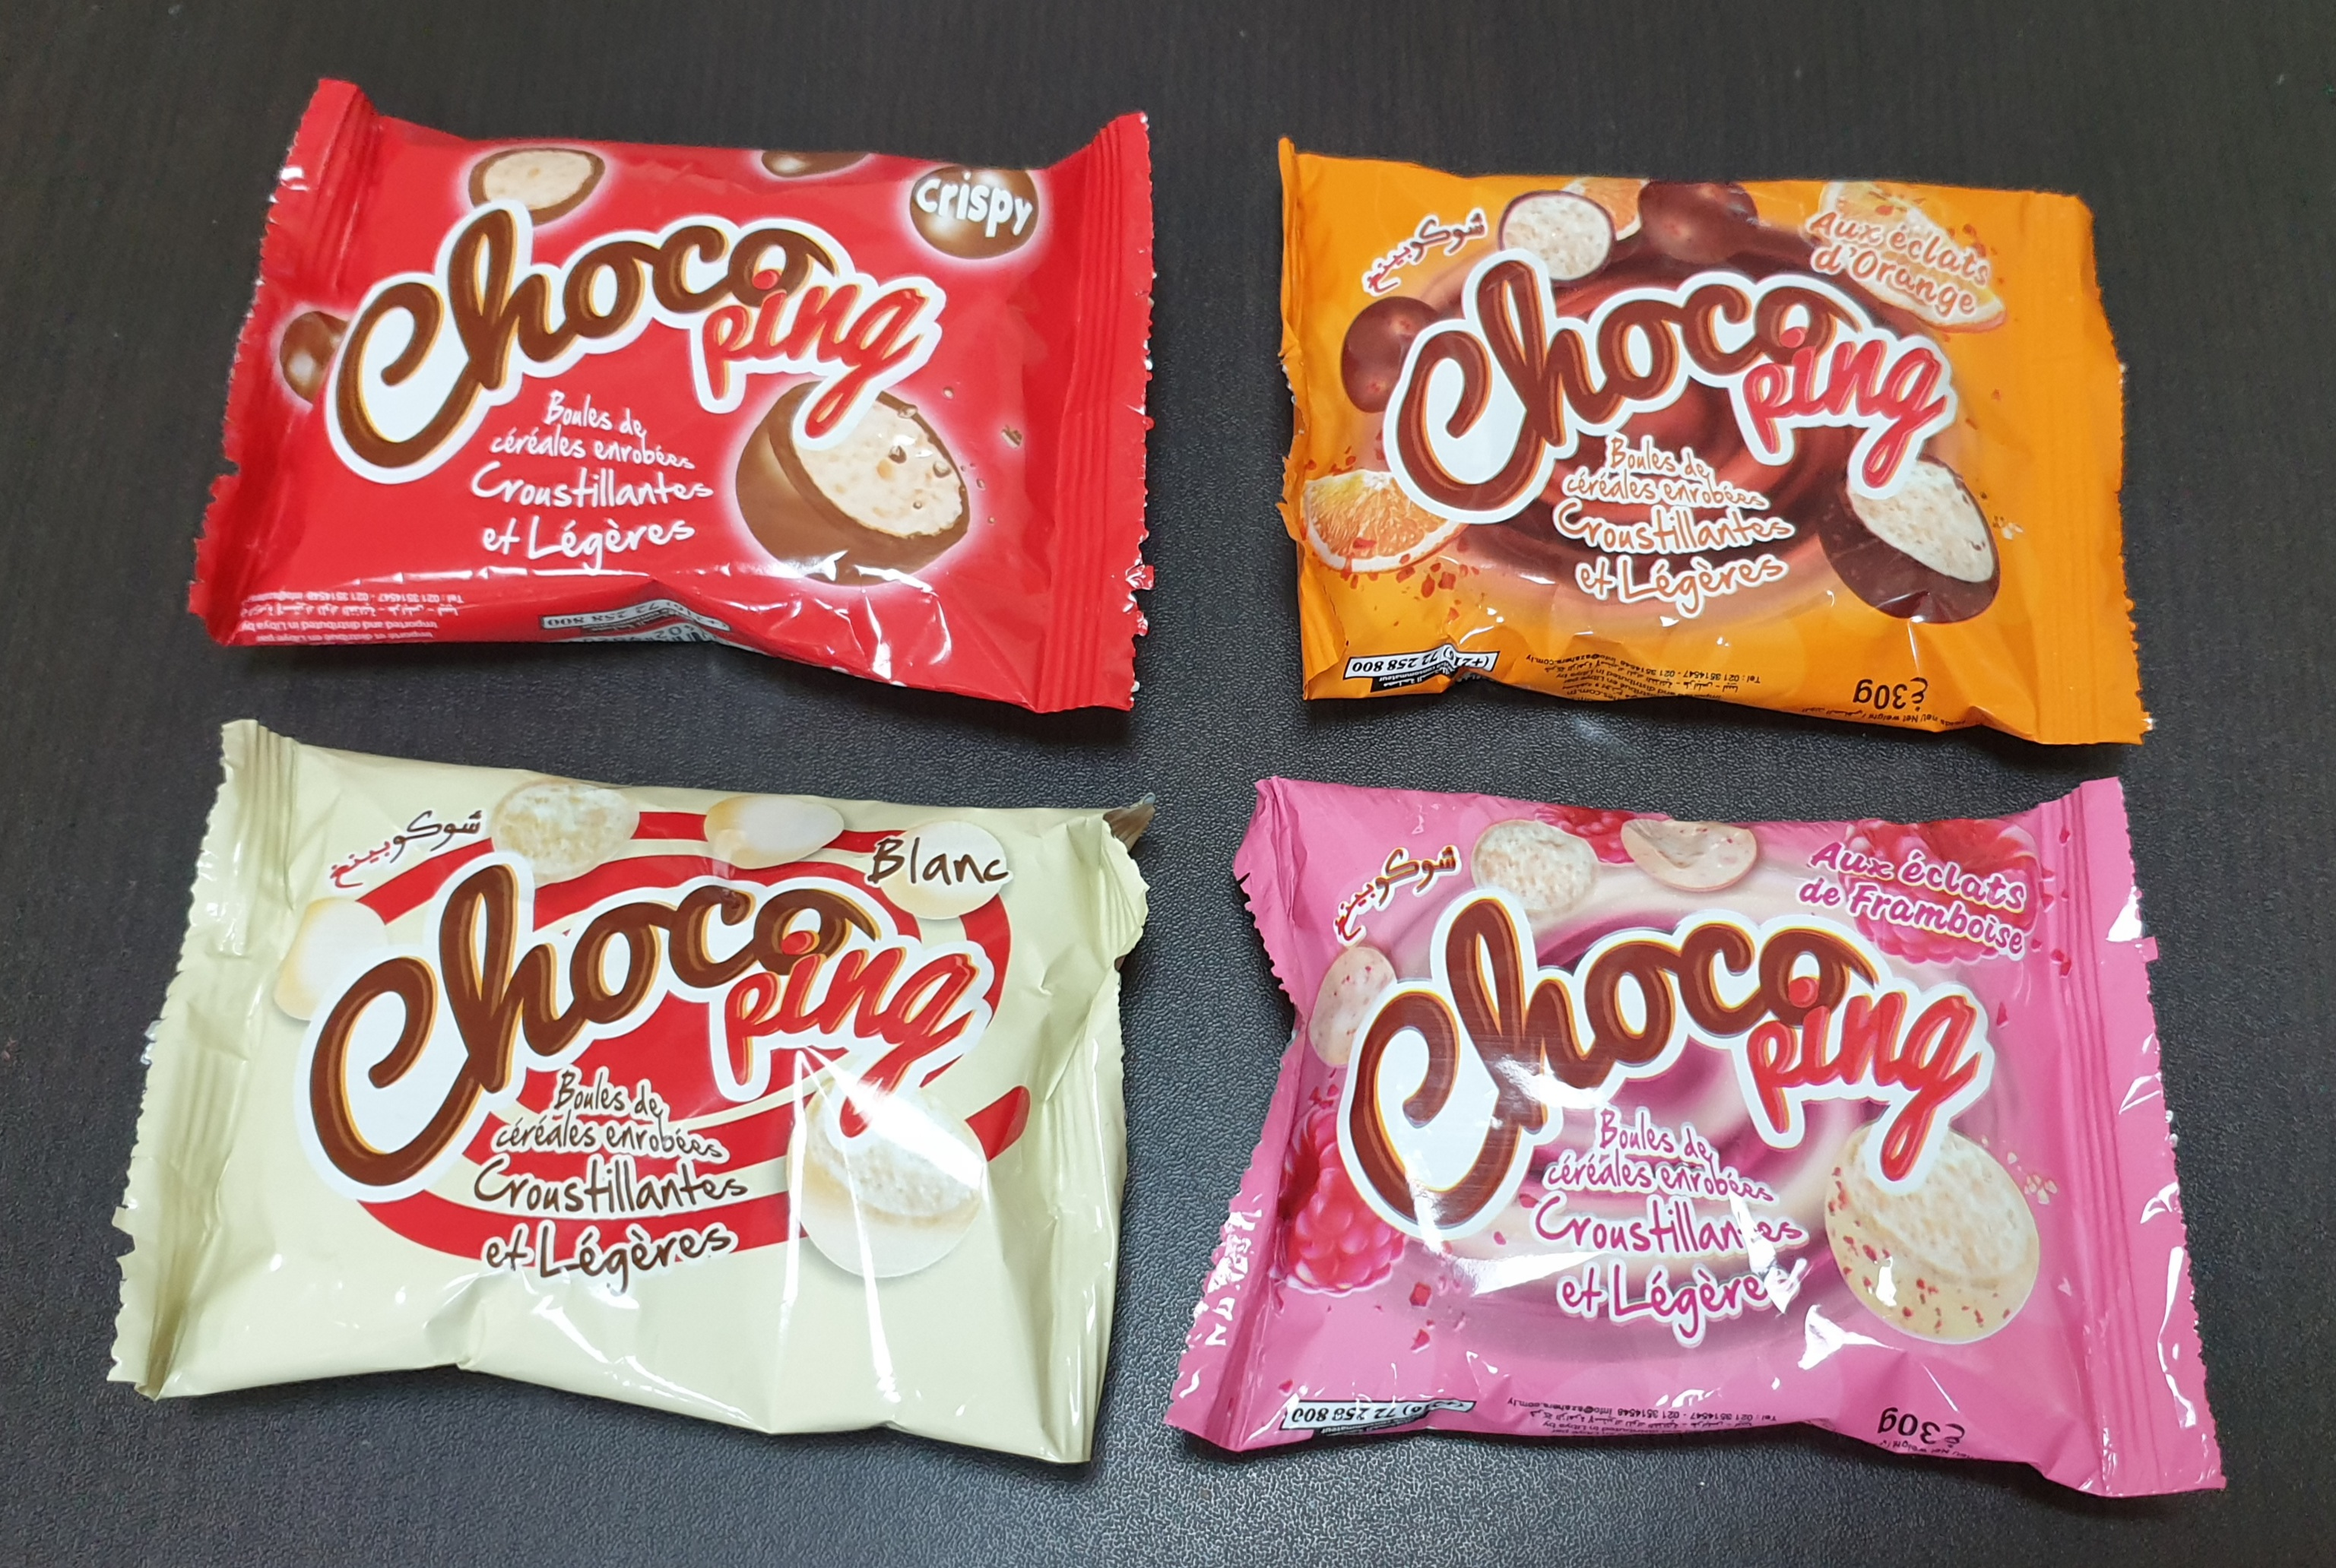 CHOCOPING PRODUCTS